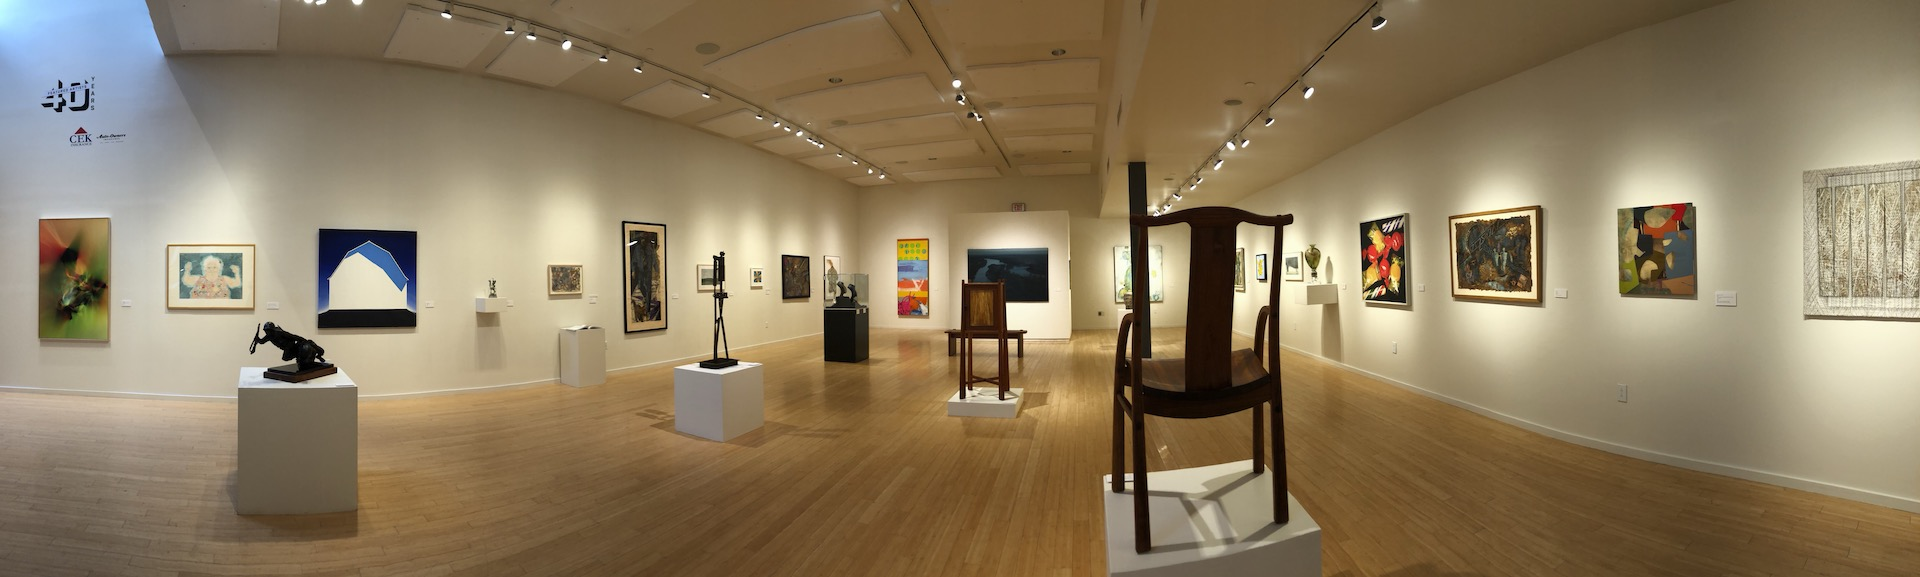 A panoramic shot of a large gallery with numerous 2D & 3D pieces